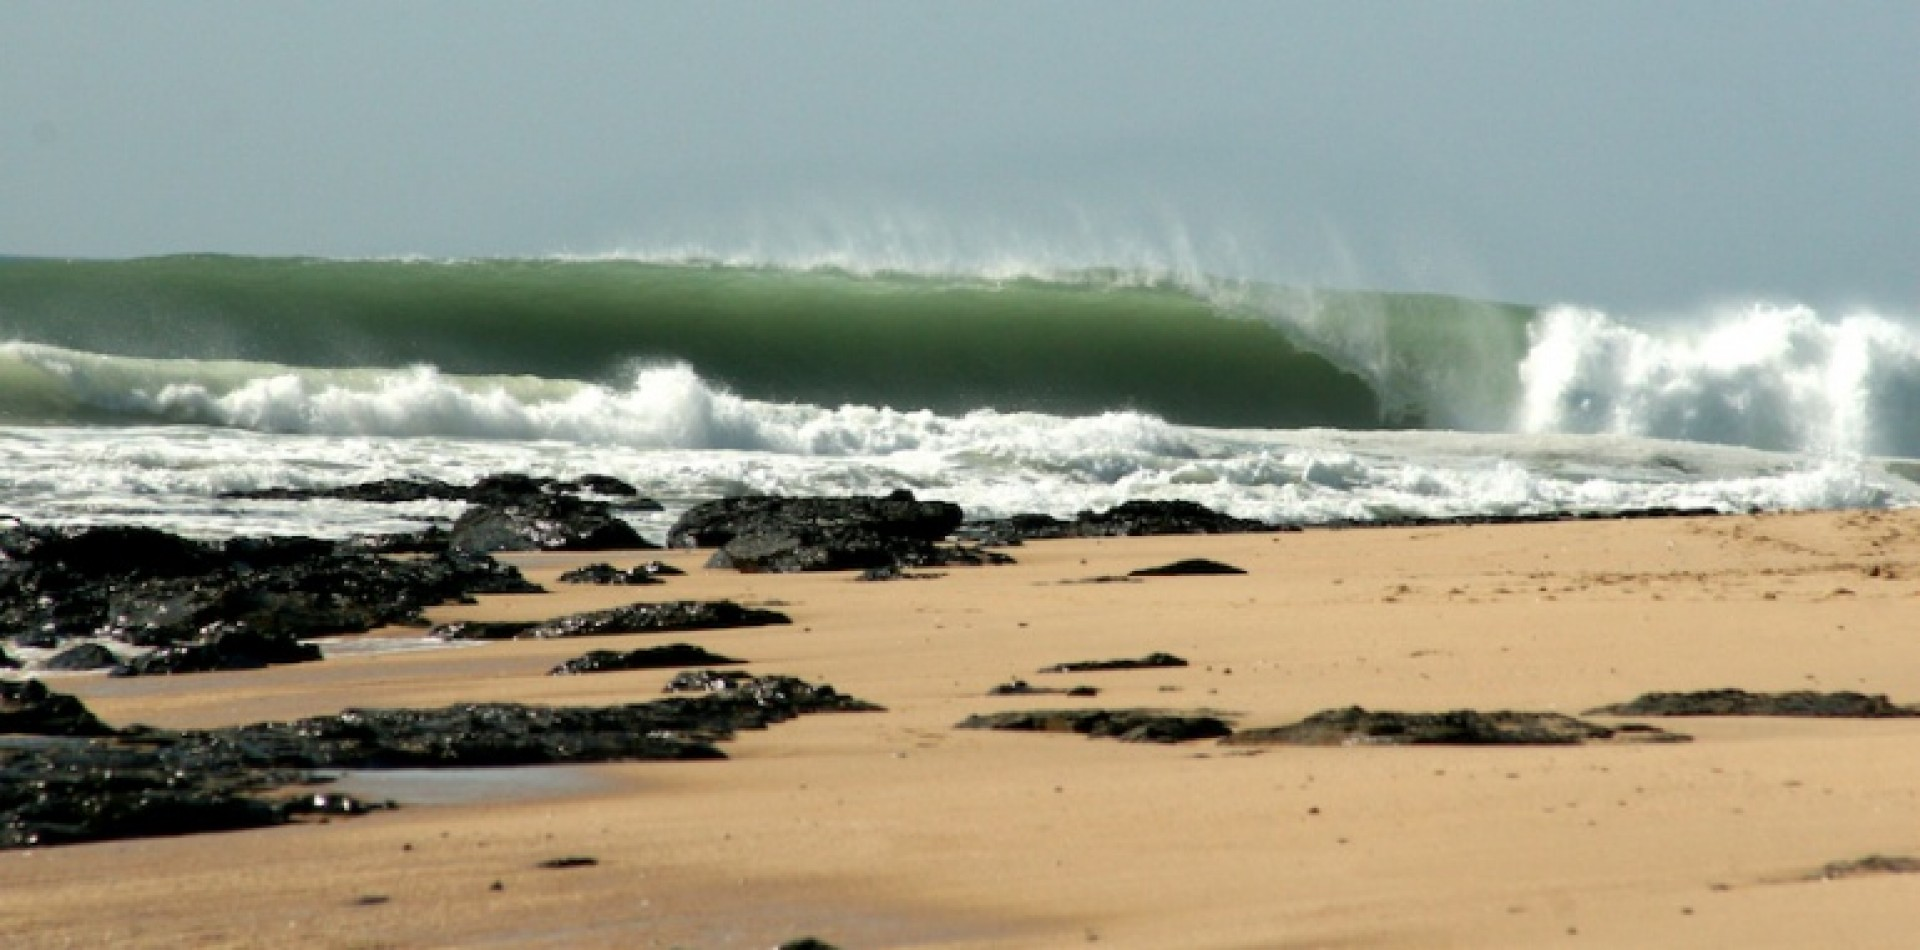 Surf Camp Maine's photo of Jeffreys Bay (J-Bay)